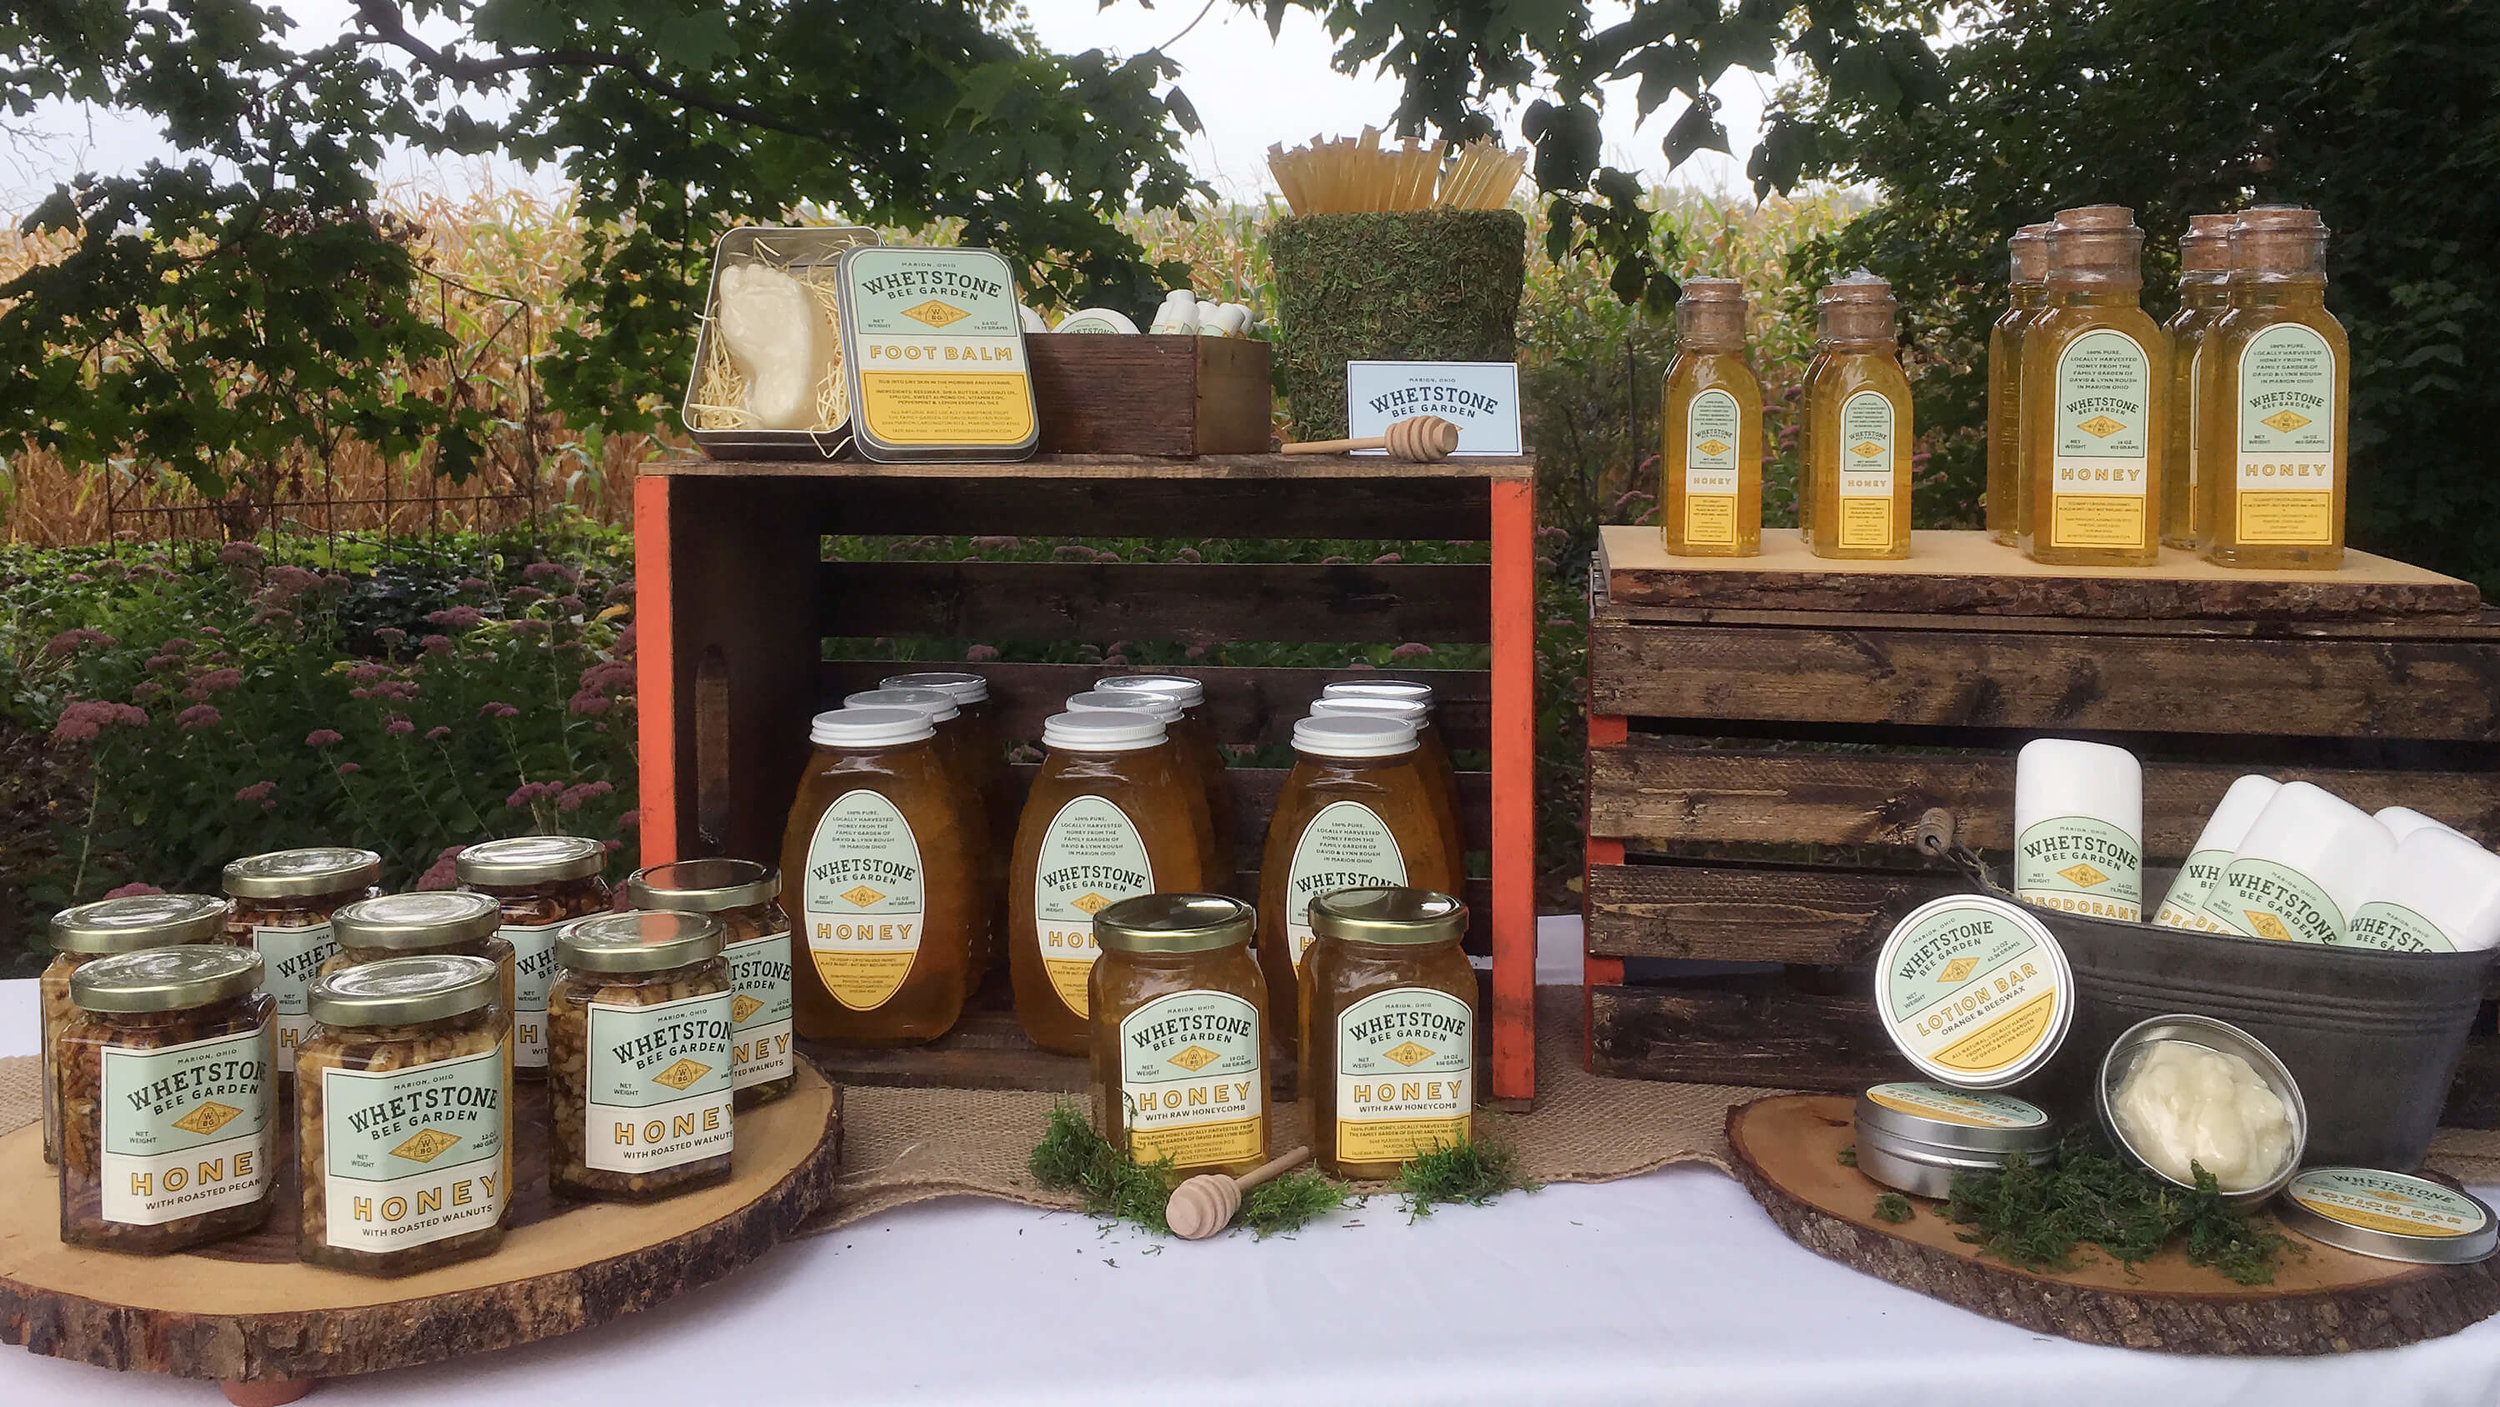 Our Products - With the help of our bees, we not only share an assortment of honey products, but handcrafted, all-natural lotion bars, deodorants and other cosmetic products.See our online shop